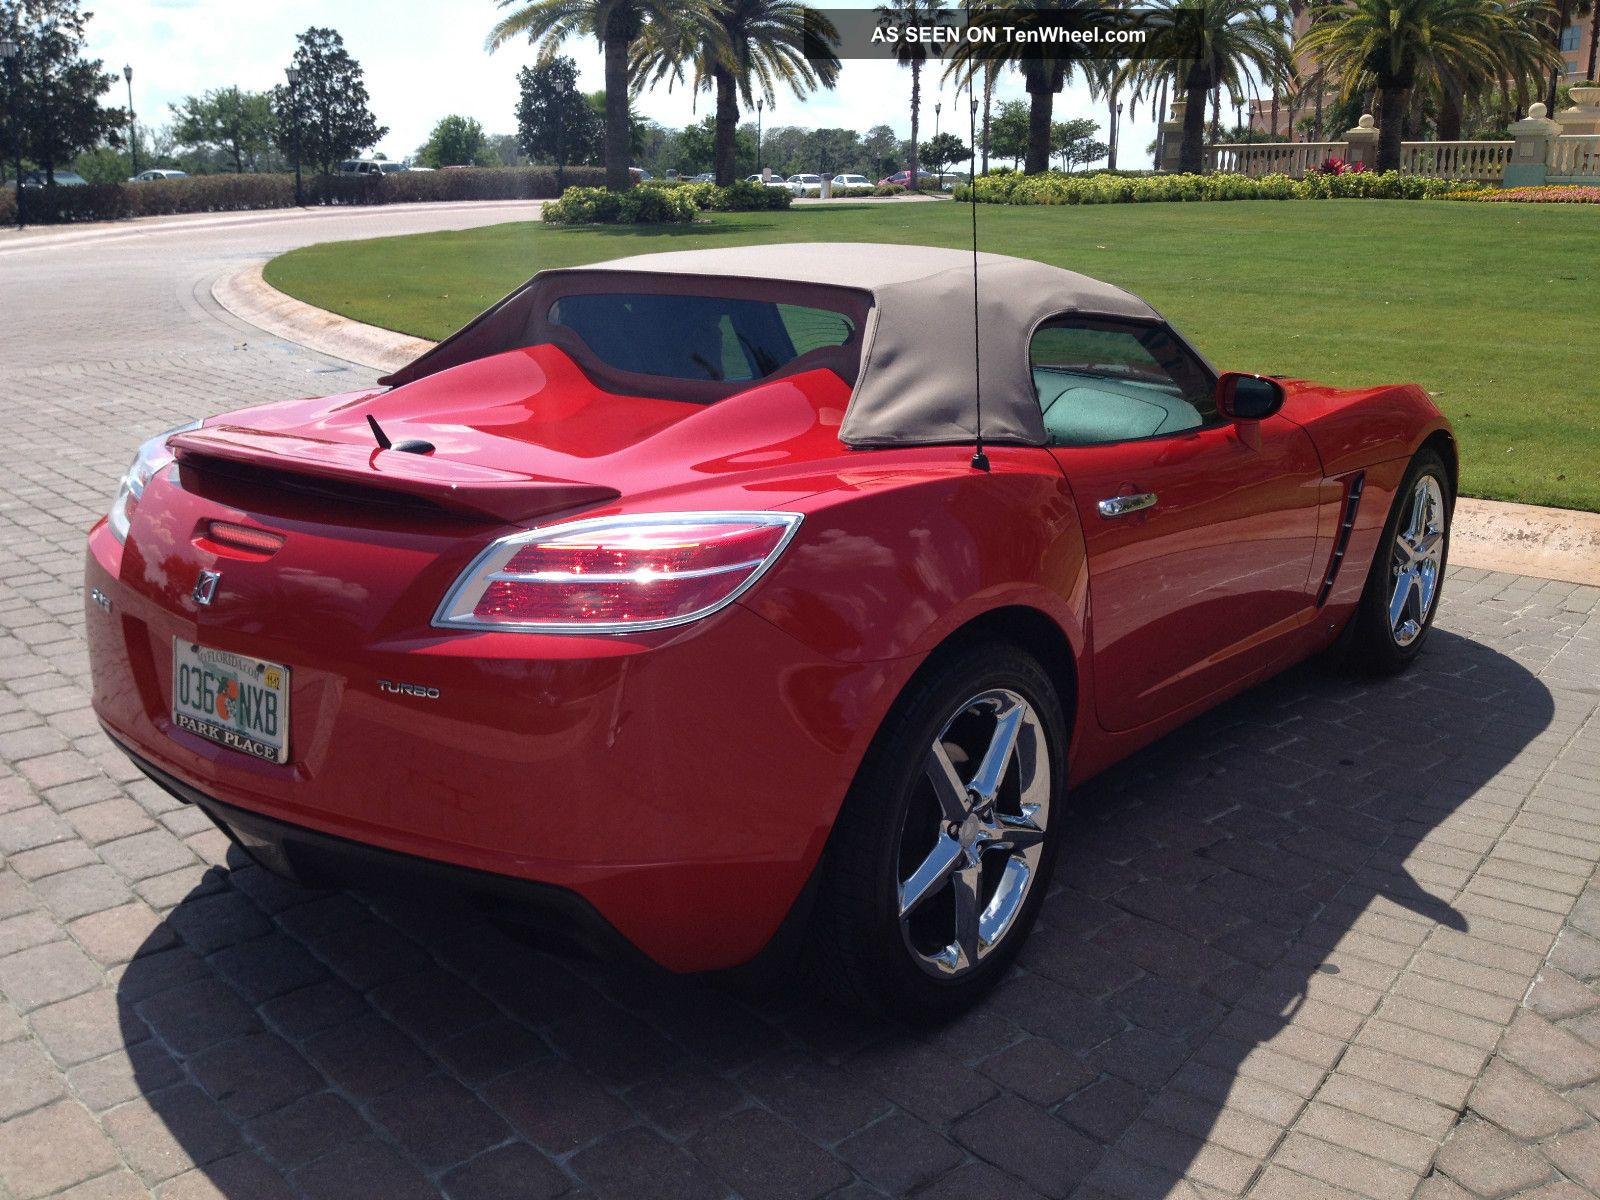 2009 saturn sky red line for sale cargurus autos post. Black Bedroom Furniture Sets. Home Design Ideas